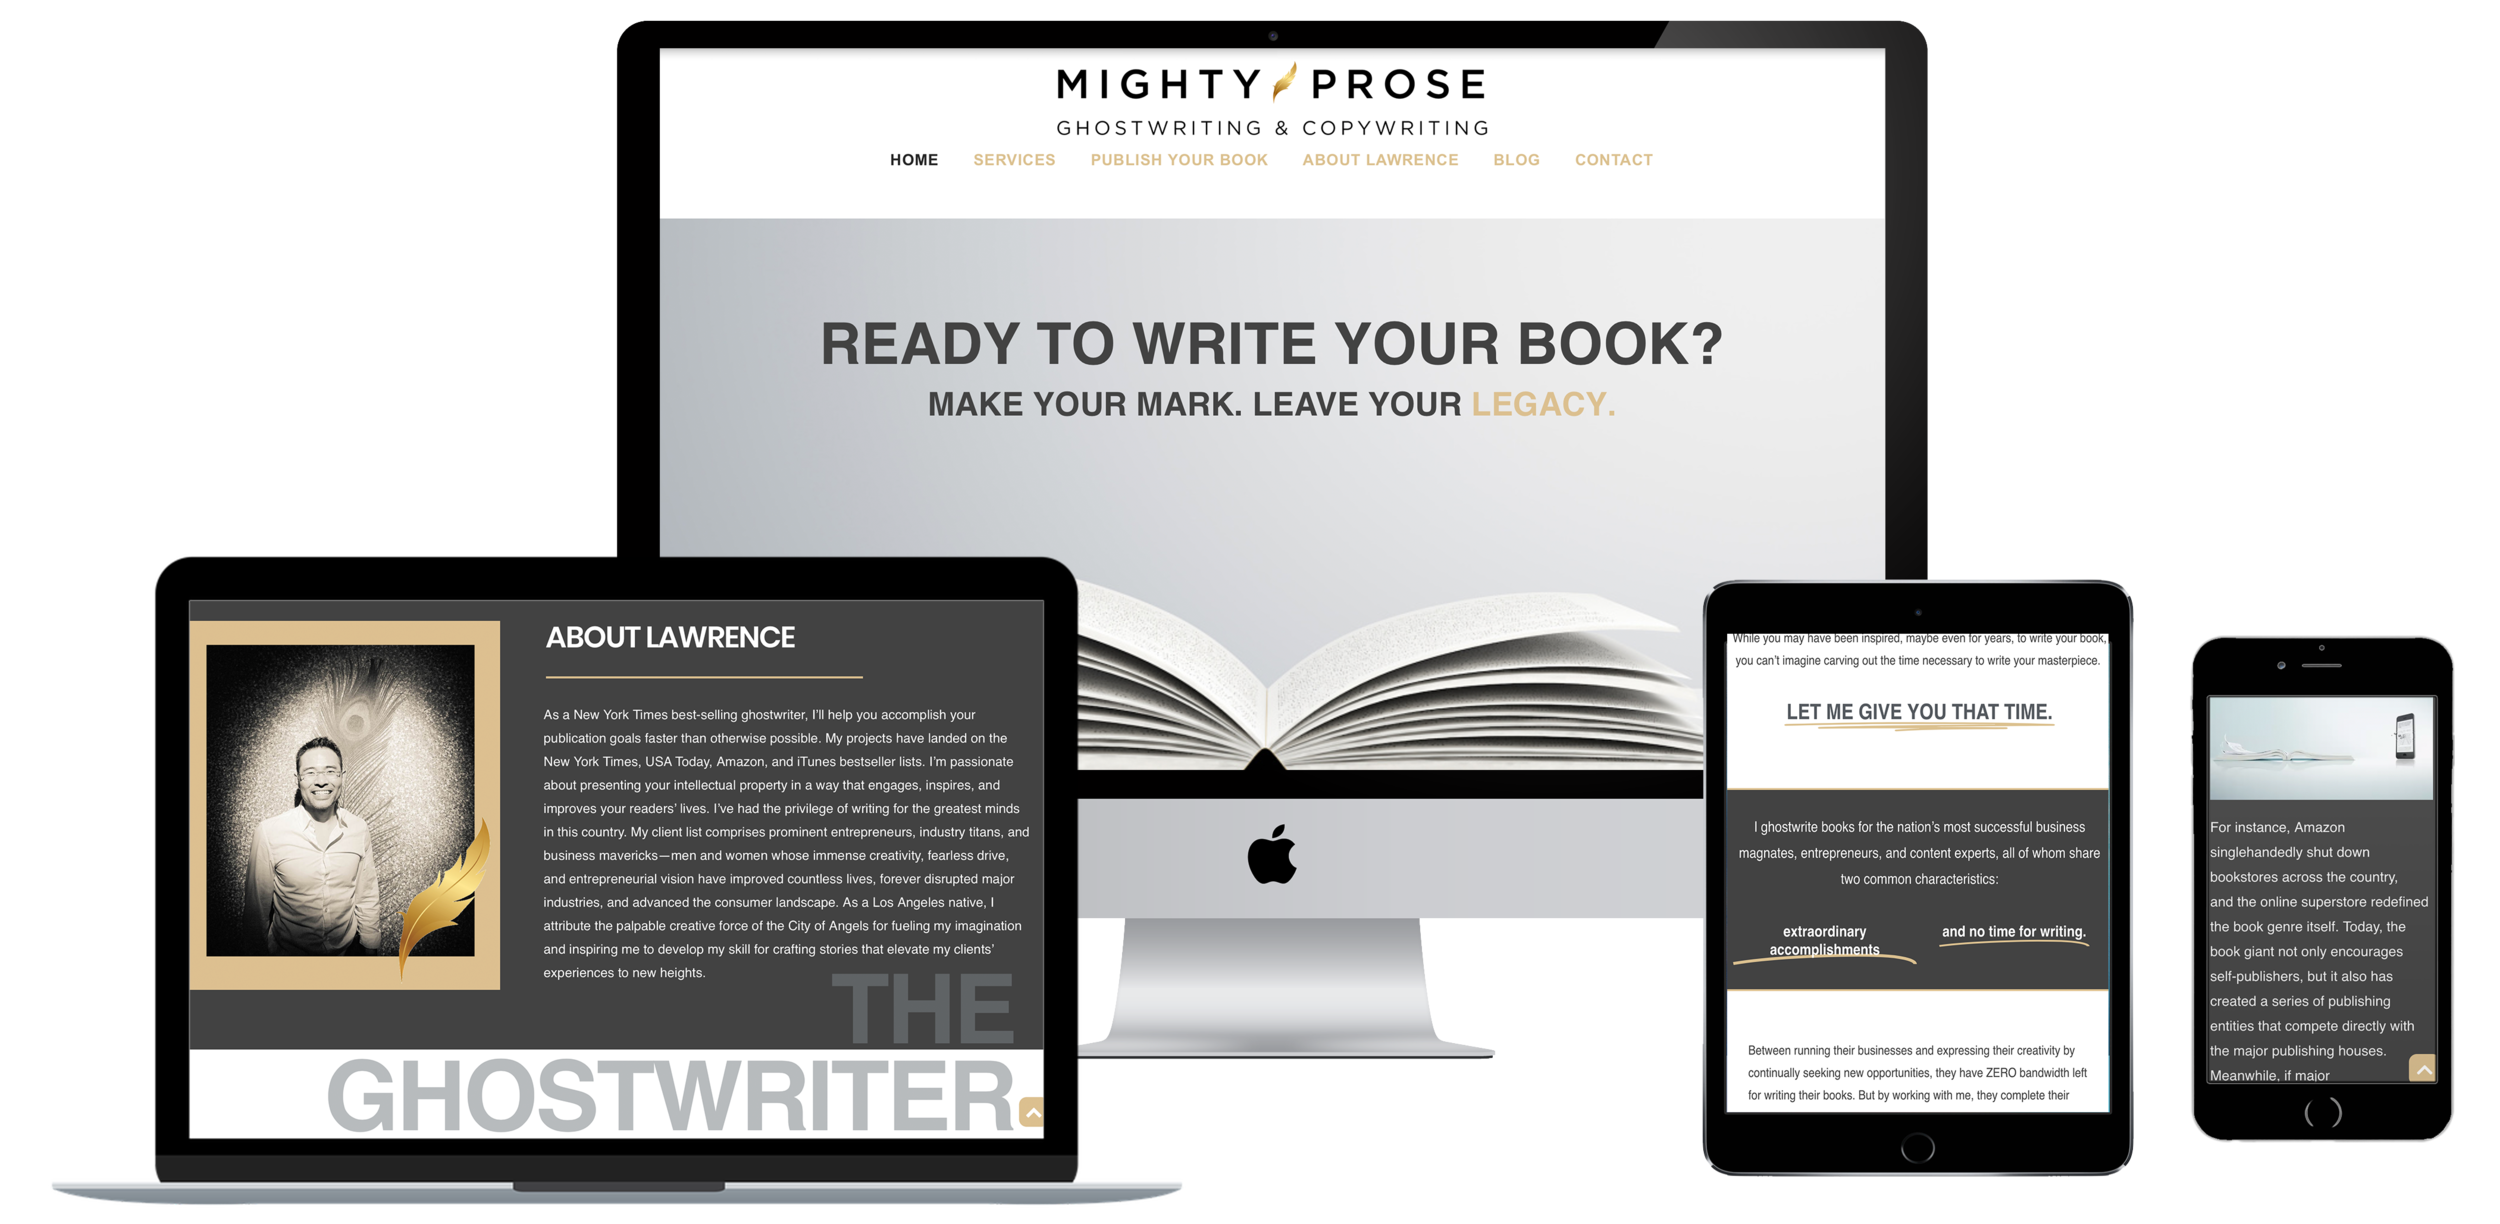 MIGHTY PROSE - LAWRENCE THE GHOSTWRITER